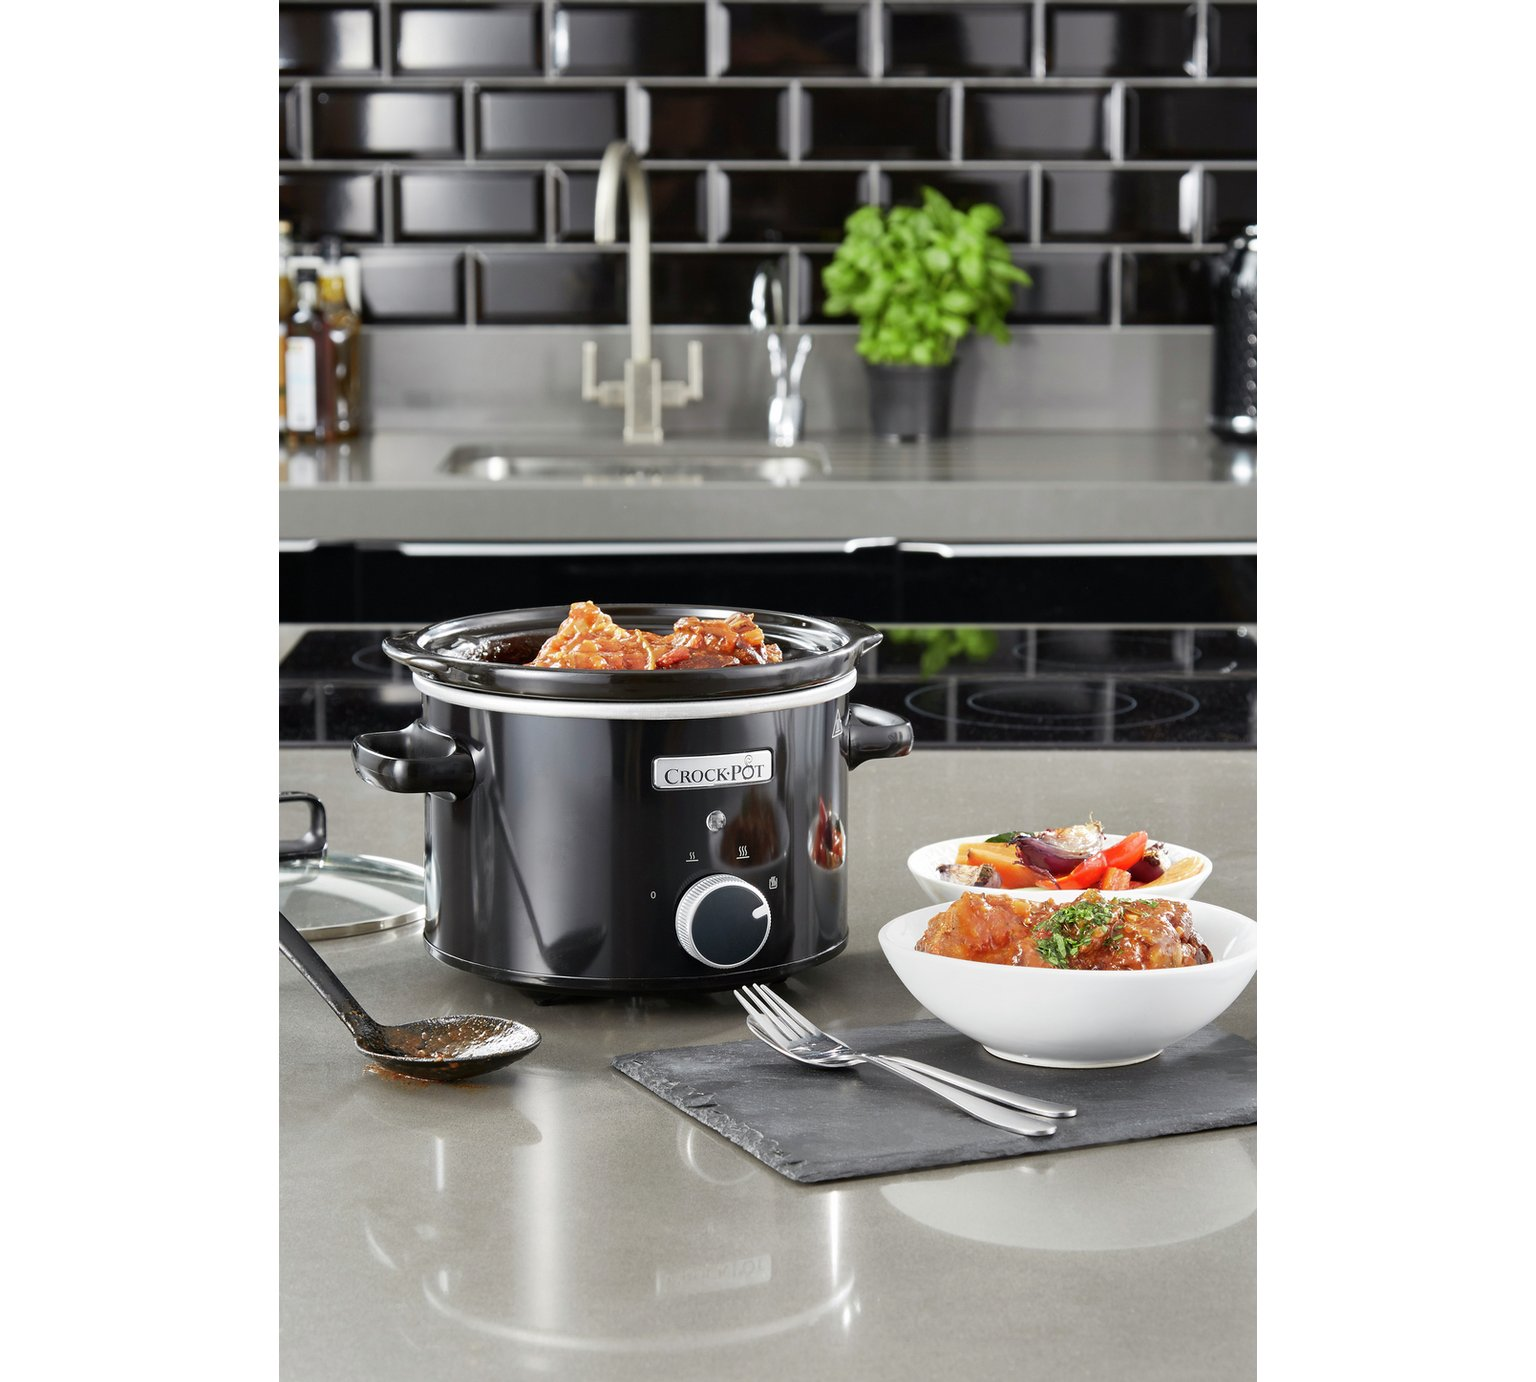 Lot 12249 - V Brand New 2.4L Crock-Pot Slow Cooker - £31.99 at Espares.co.uk - Black - Dishwasher Safe - Oven